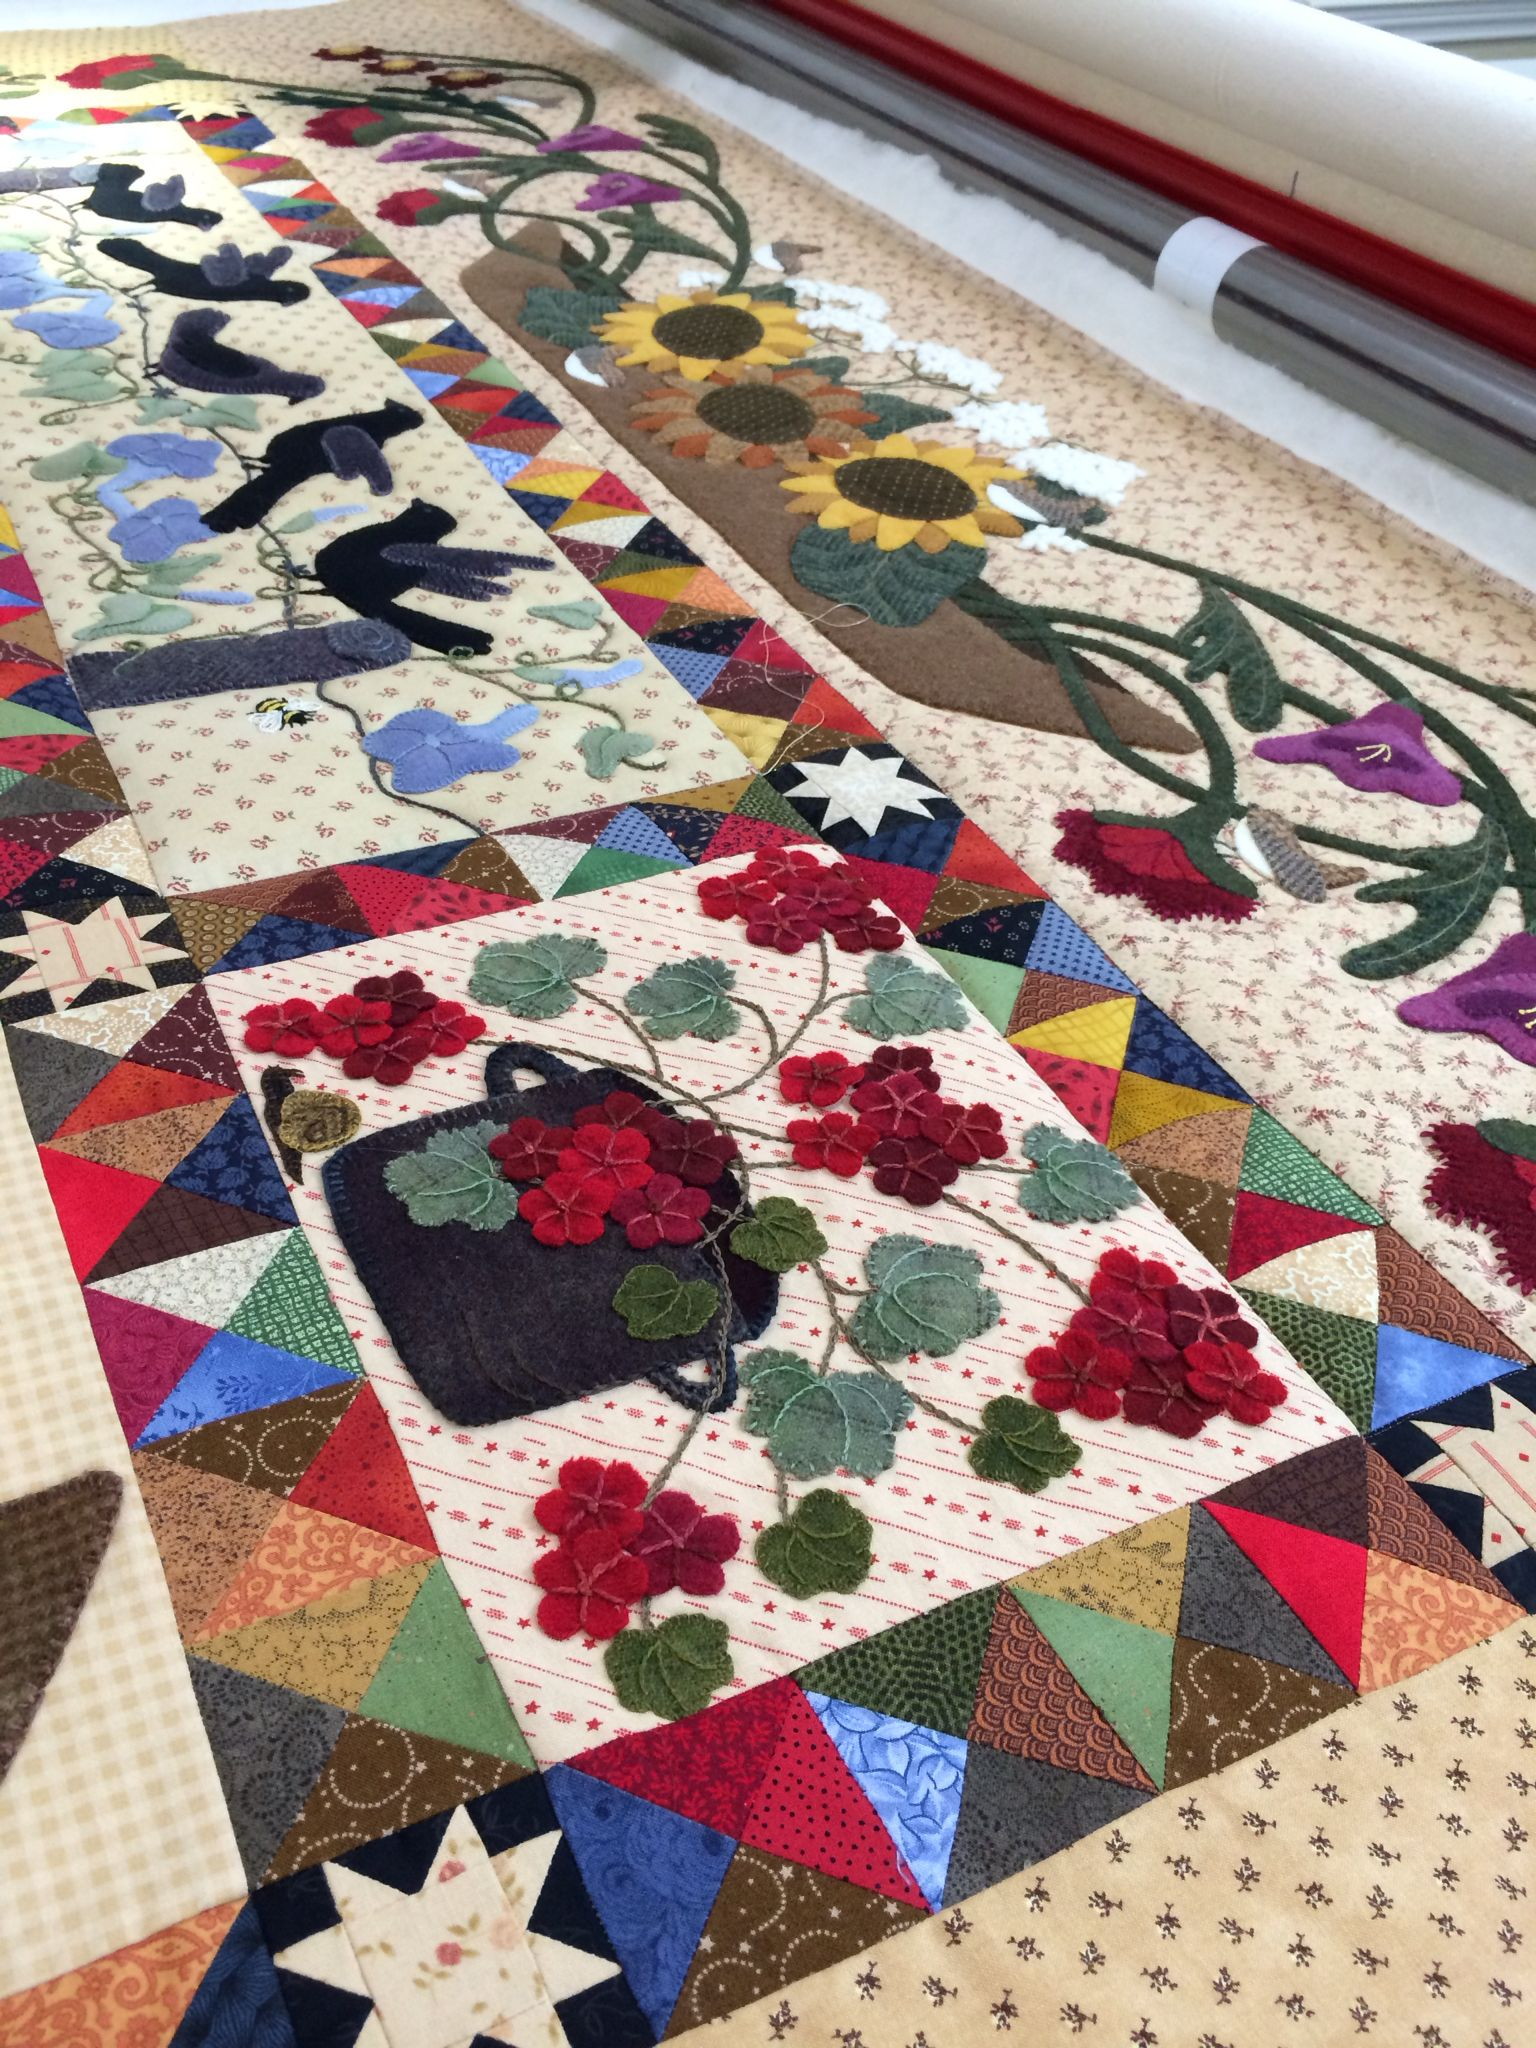 Pattern From Primitive Gatherings Titled A Primitive Garden Quilt Made By Rhonda Dort Applique Quilts Quilting Studio Row Quilt